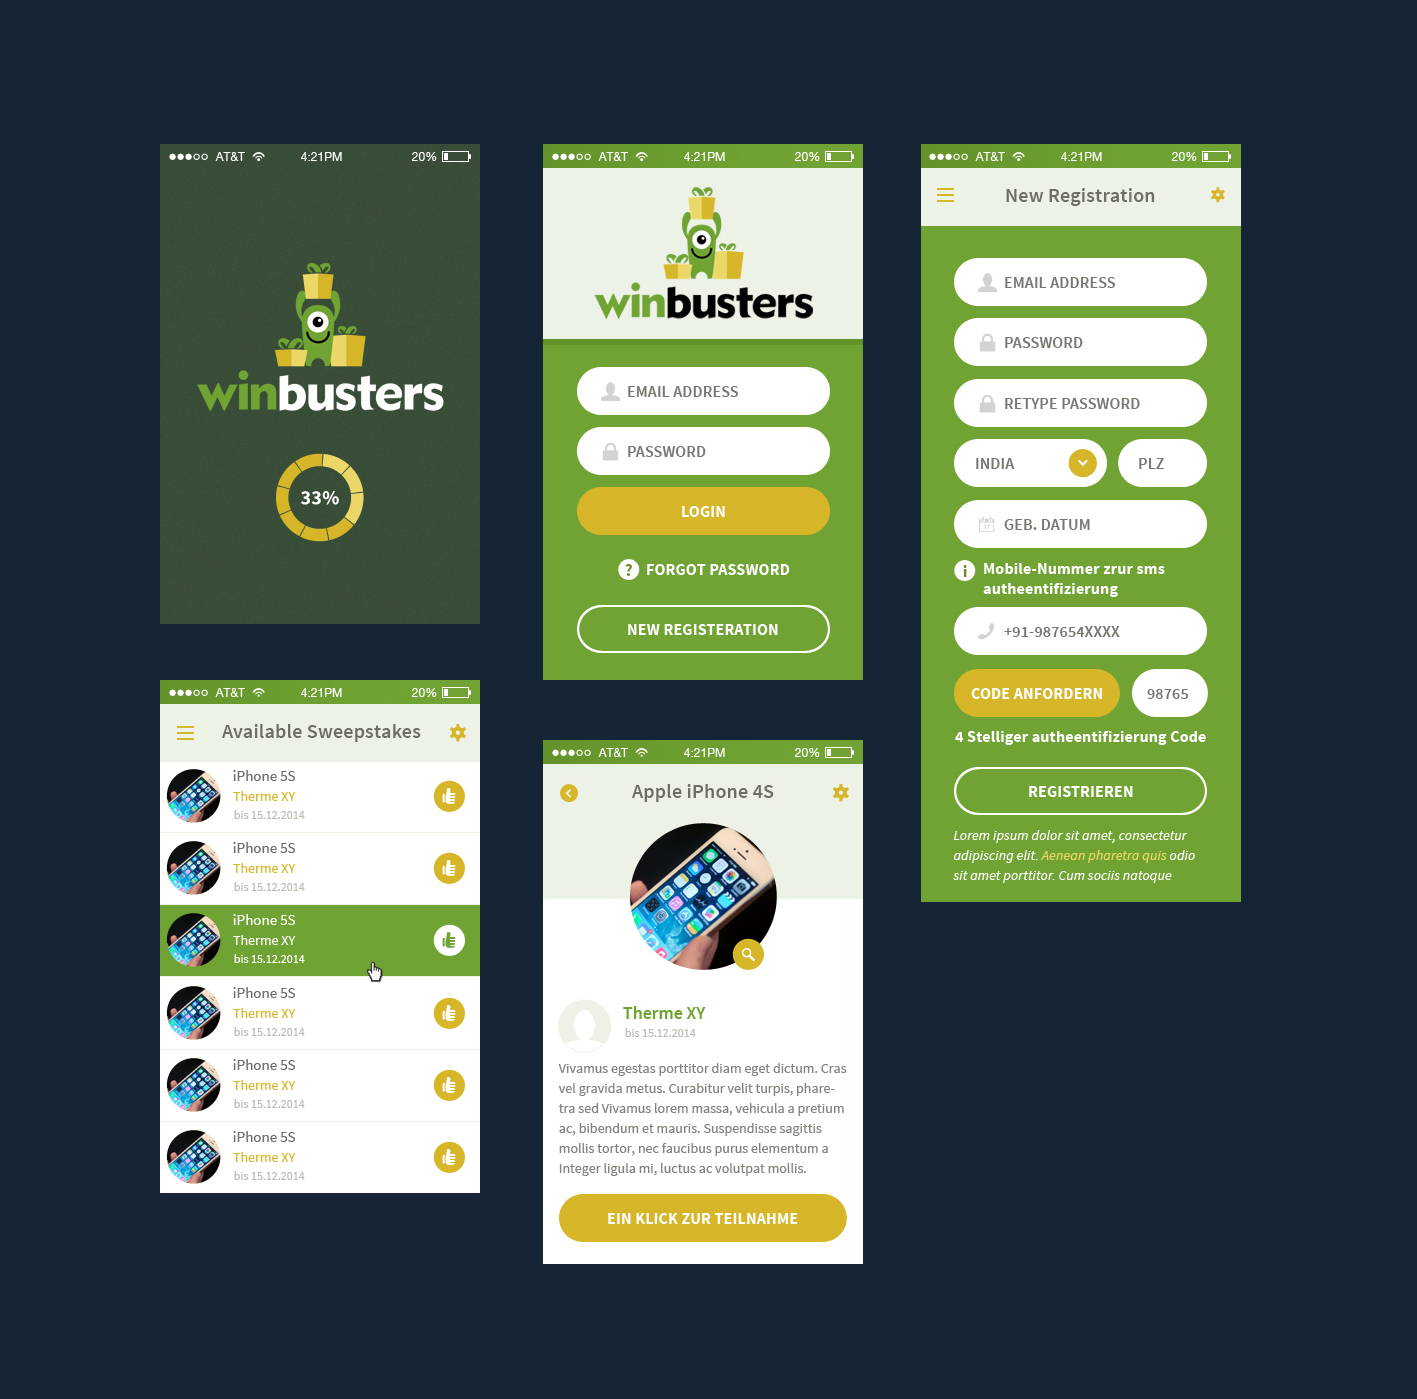 High Quality Web Design By Hashim Creetto For Design For Mobile And Web App For  Sweepstakes.